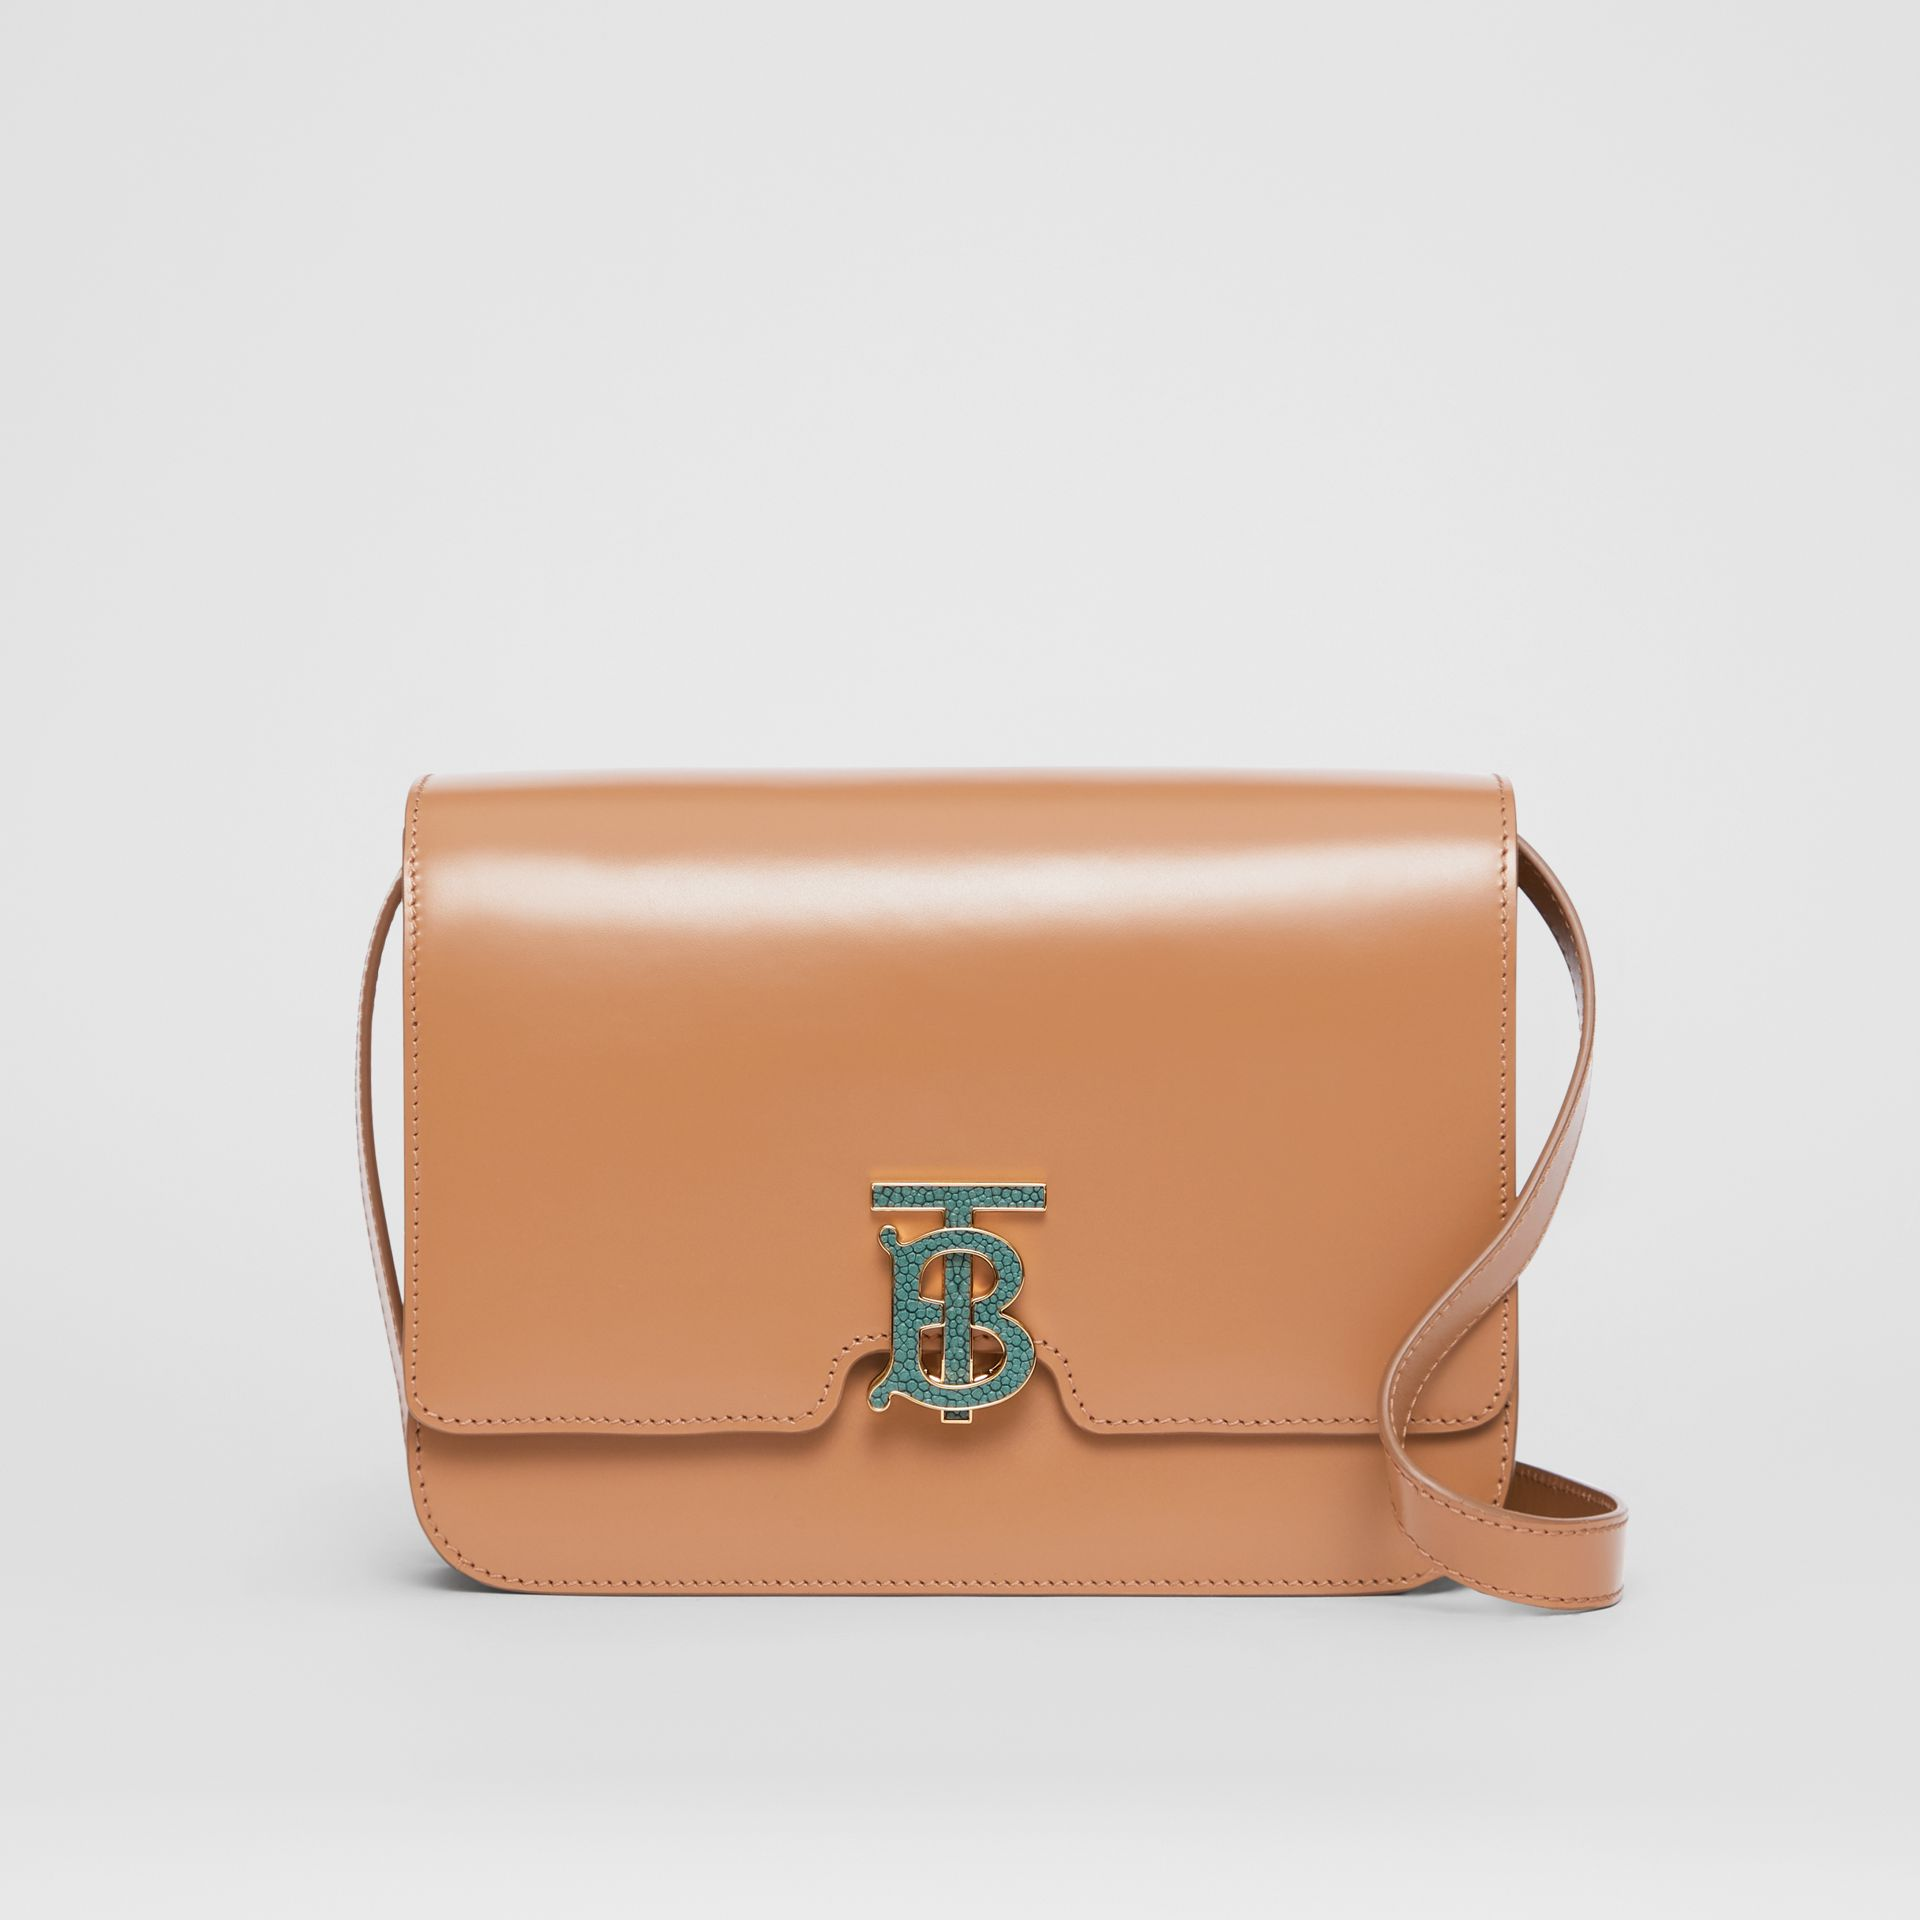 Medium Leather TB Bag in Flaxseed - Women | Burberry Hong Kong S.A.R - gallery image 0